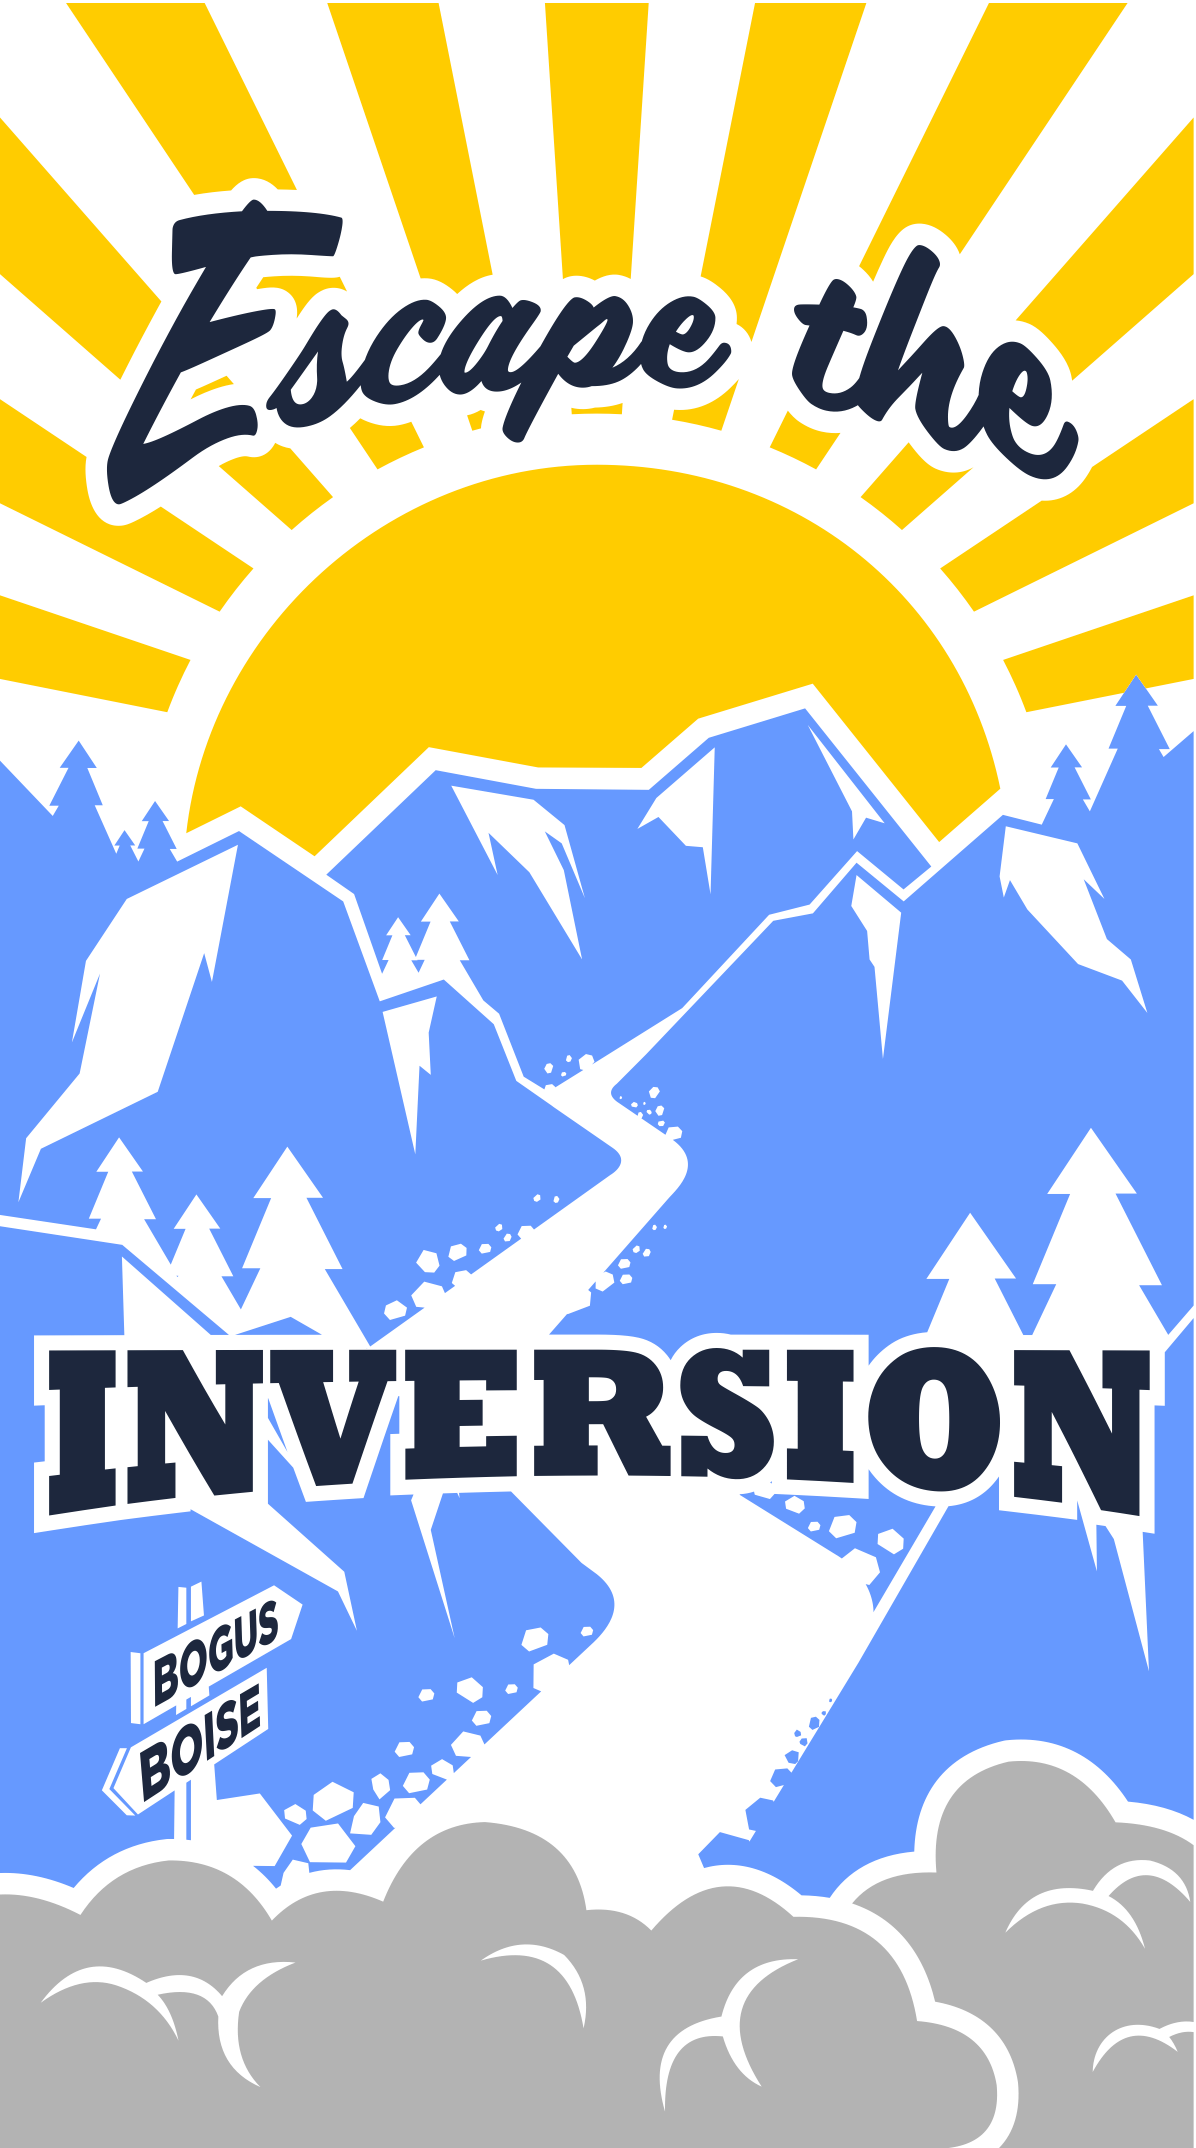 Escape the INVERSION T